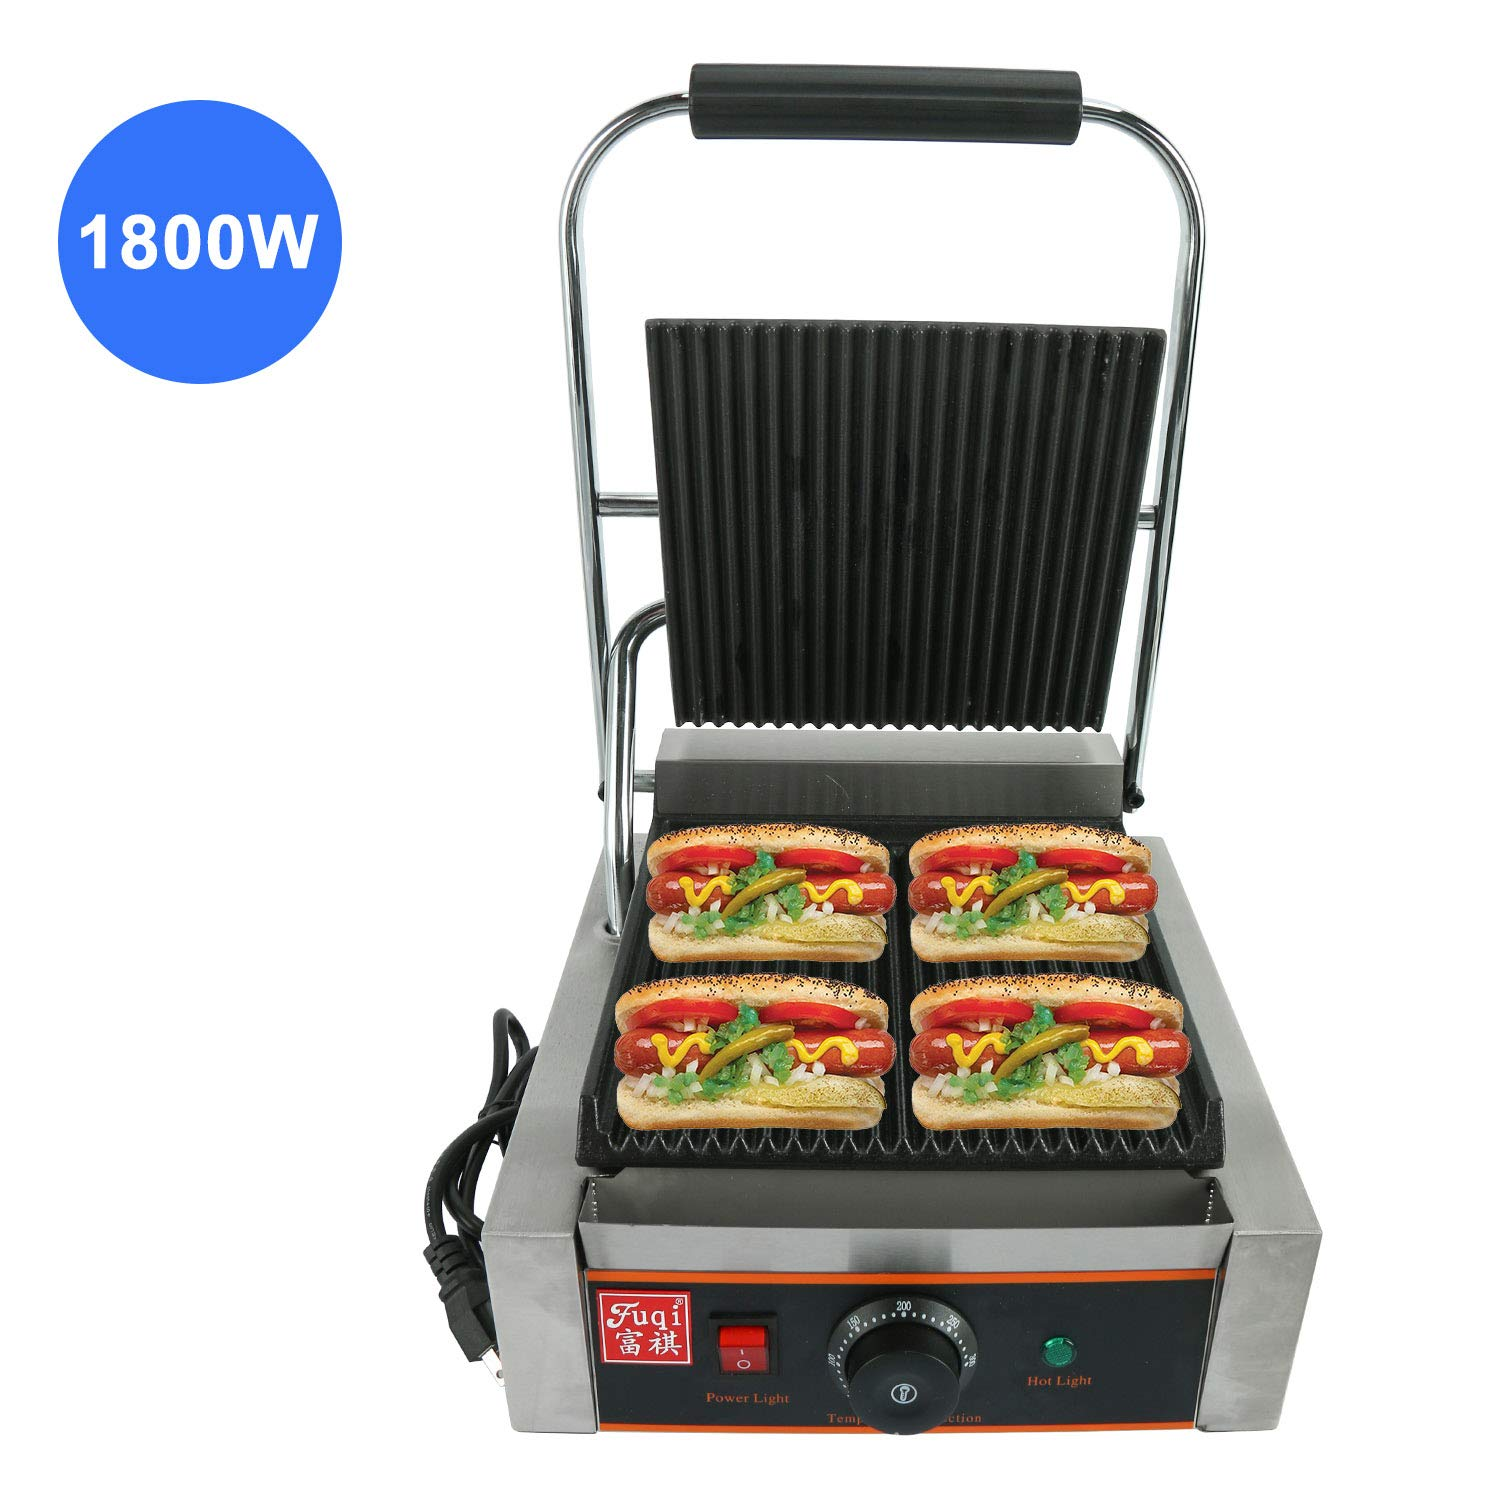 Homend 110V 1800W Sandwich Press Commercial Panini Grill Durable Stainless Steel Construction with Adjustable Temperature Control Cooking Non Stick Surface, Grooved Plates